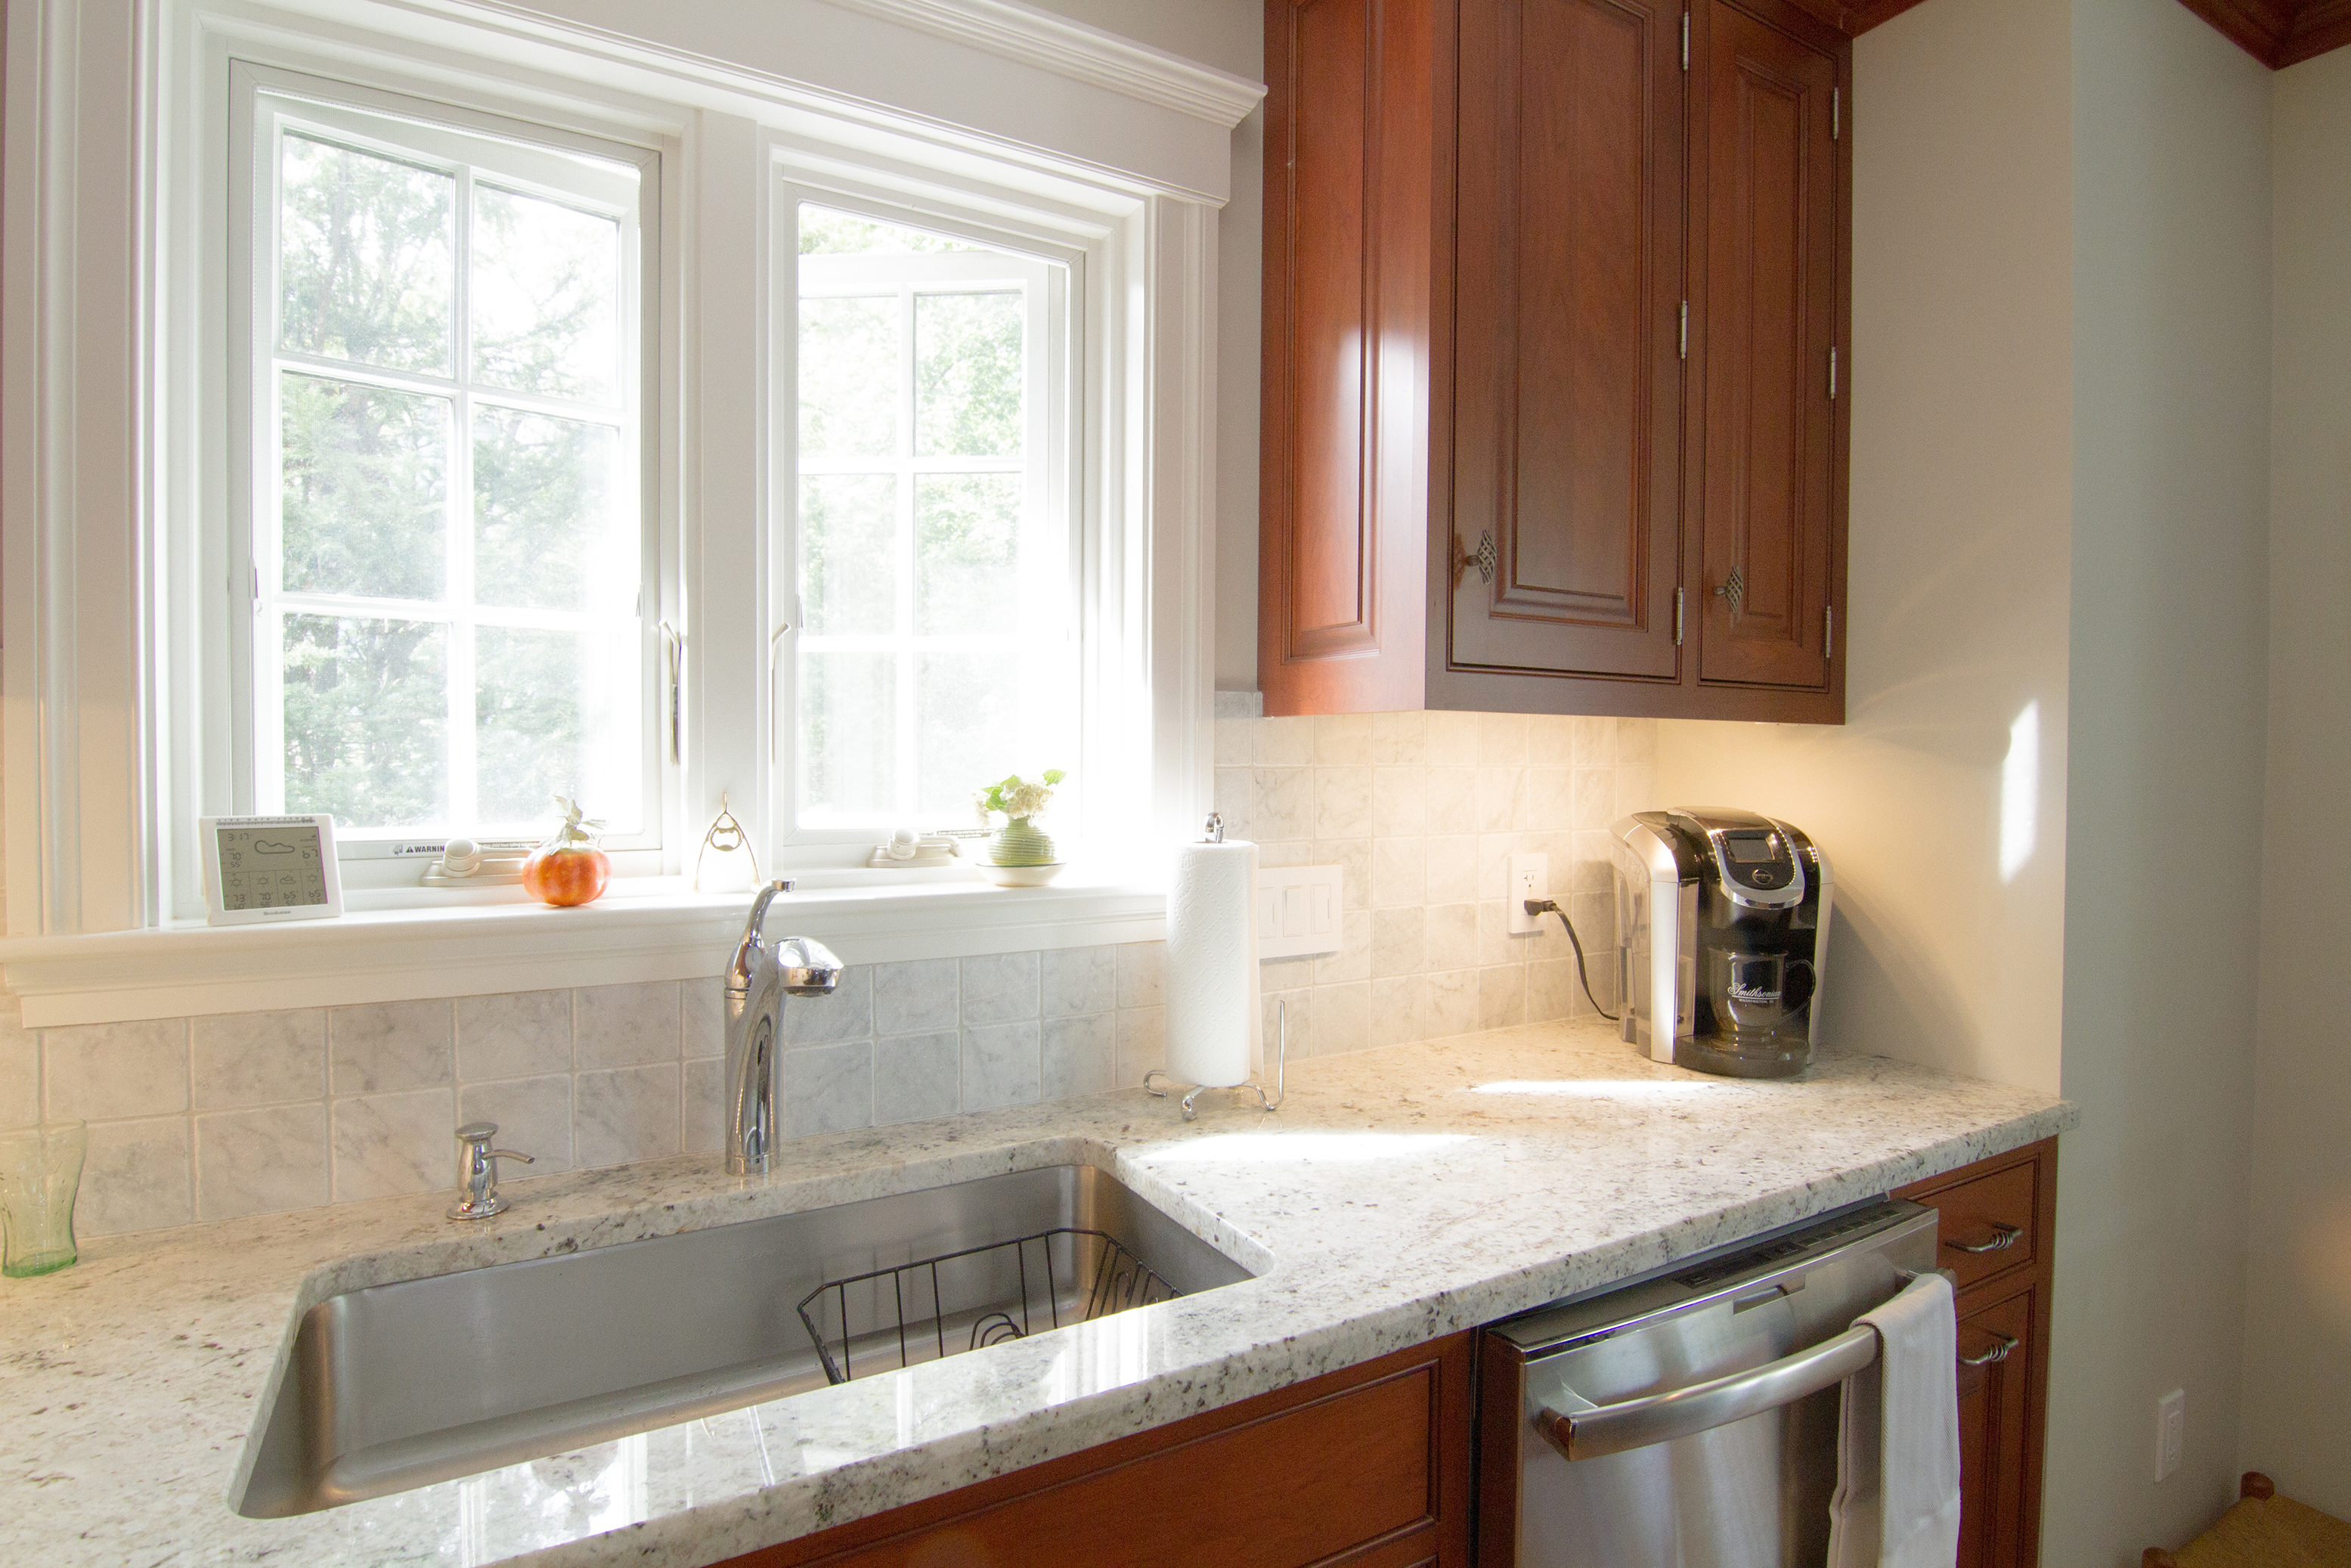 New Construction Kitchen Sink